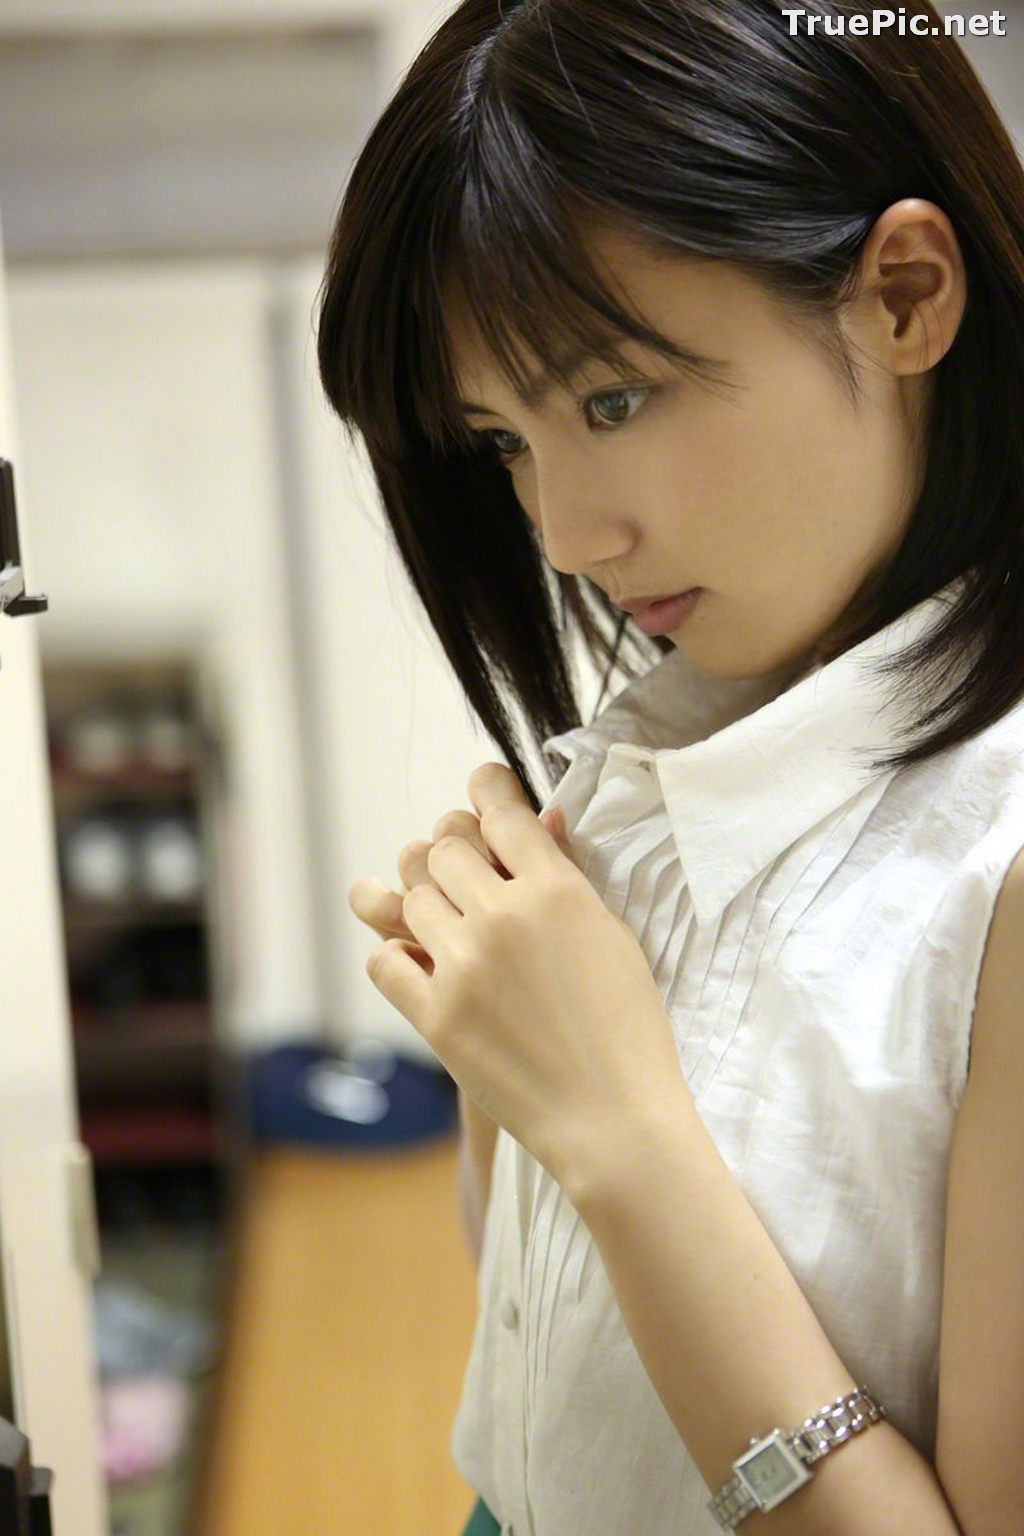 Image [WBGC Photograph] No.131 - Japanese Singer and Actress - Erina Mano - TruePic.net - Picture-1